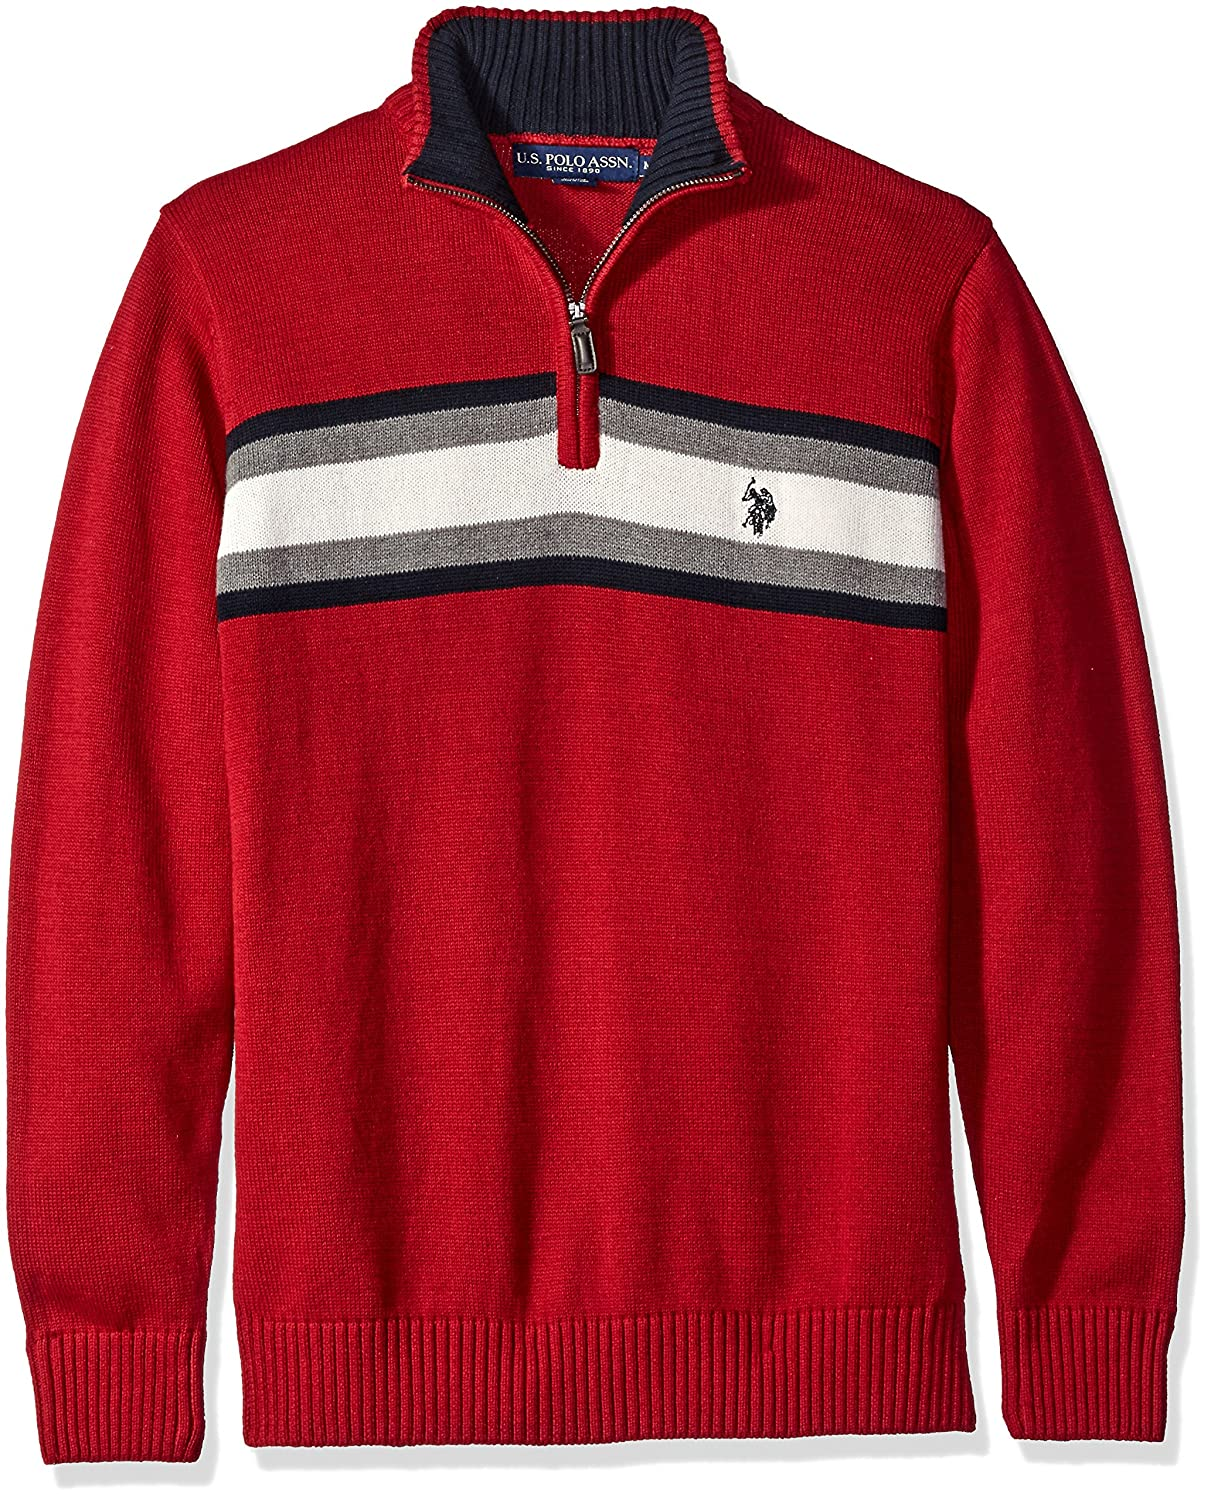 U.S. Polo Assn. Men's Tri-Color Chest Stripe 1/4 Zip Sweater ACUSR5681